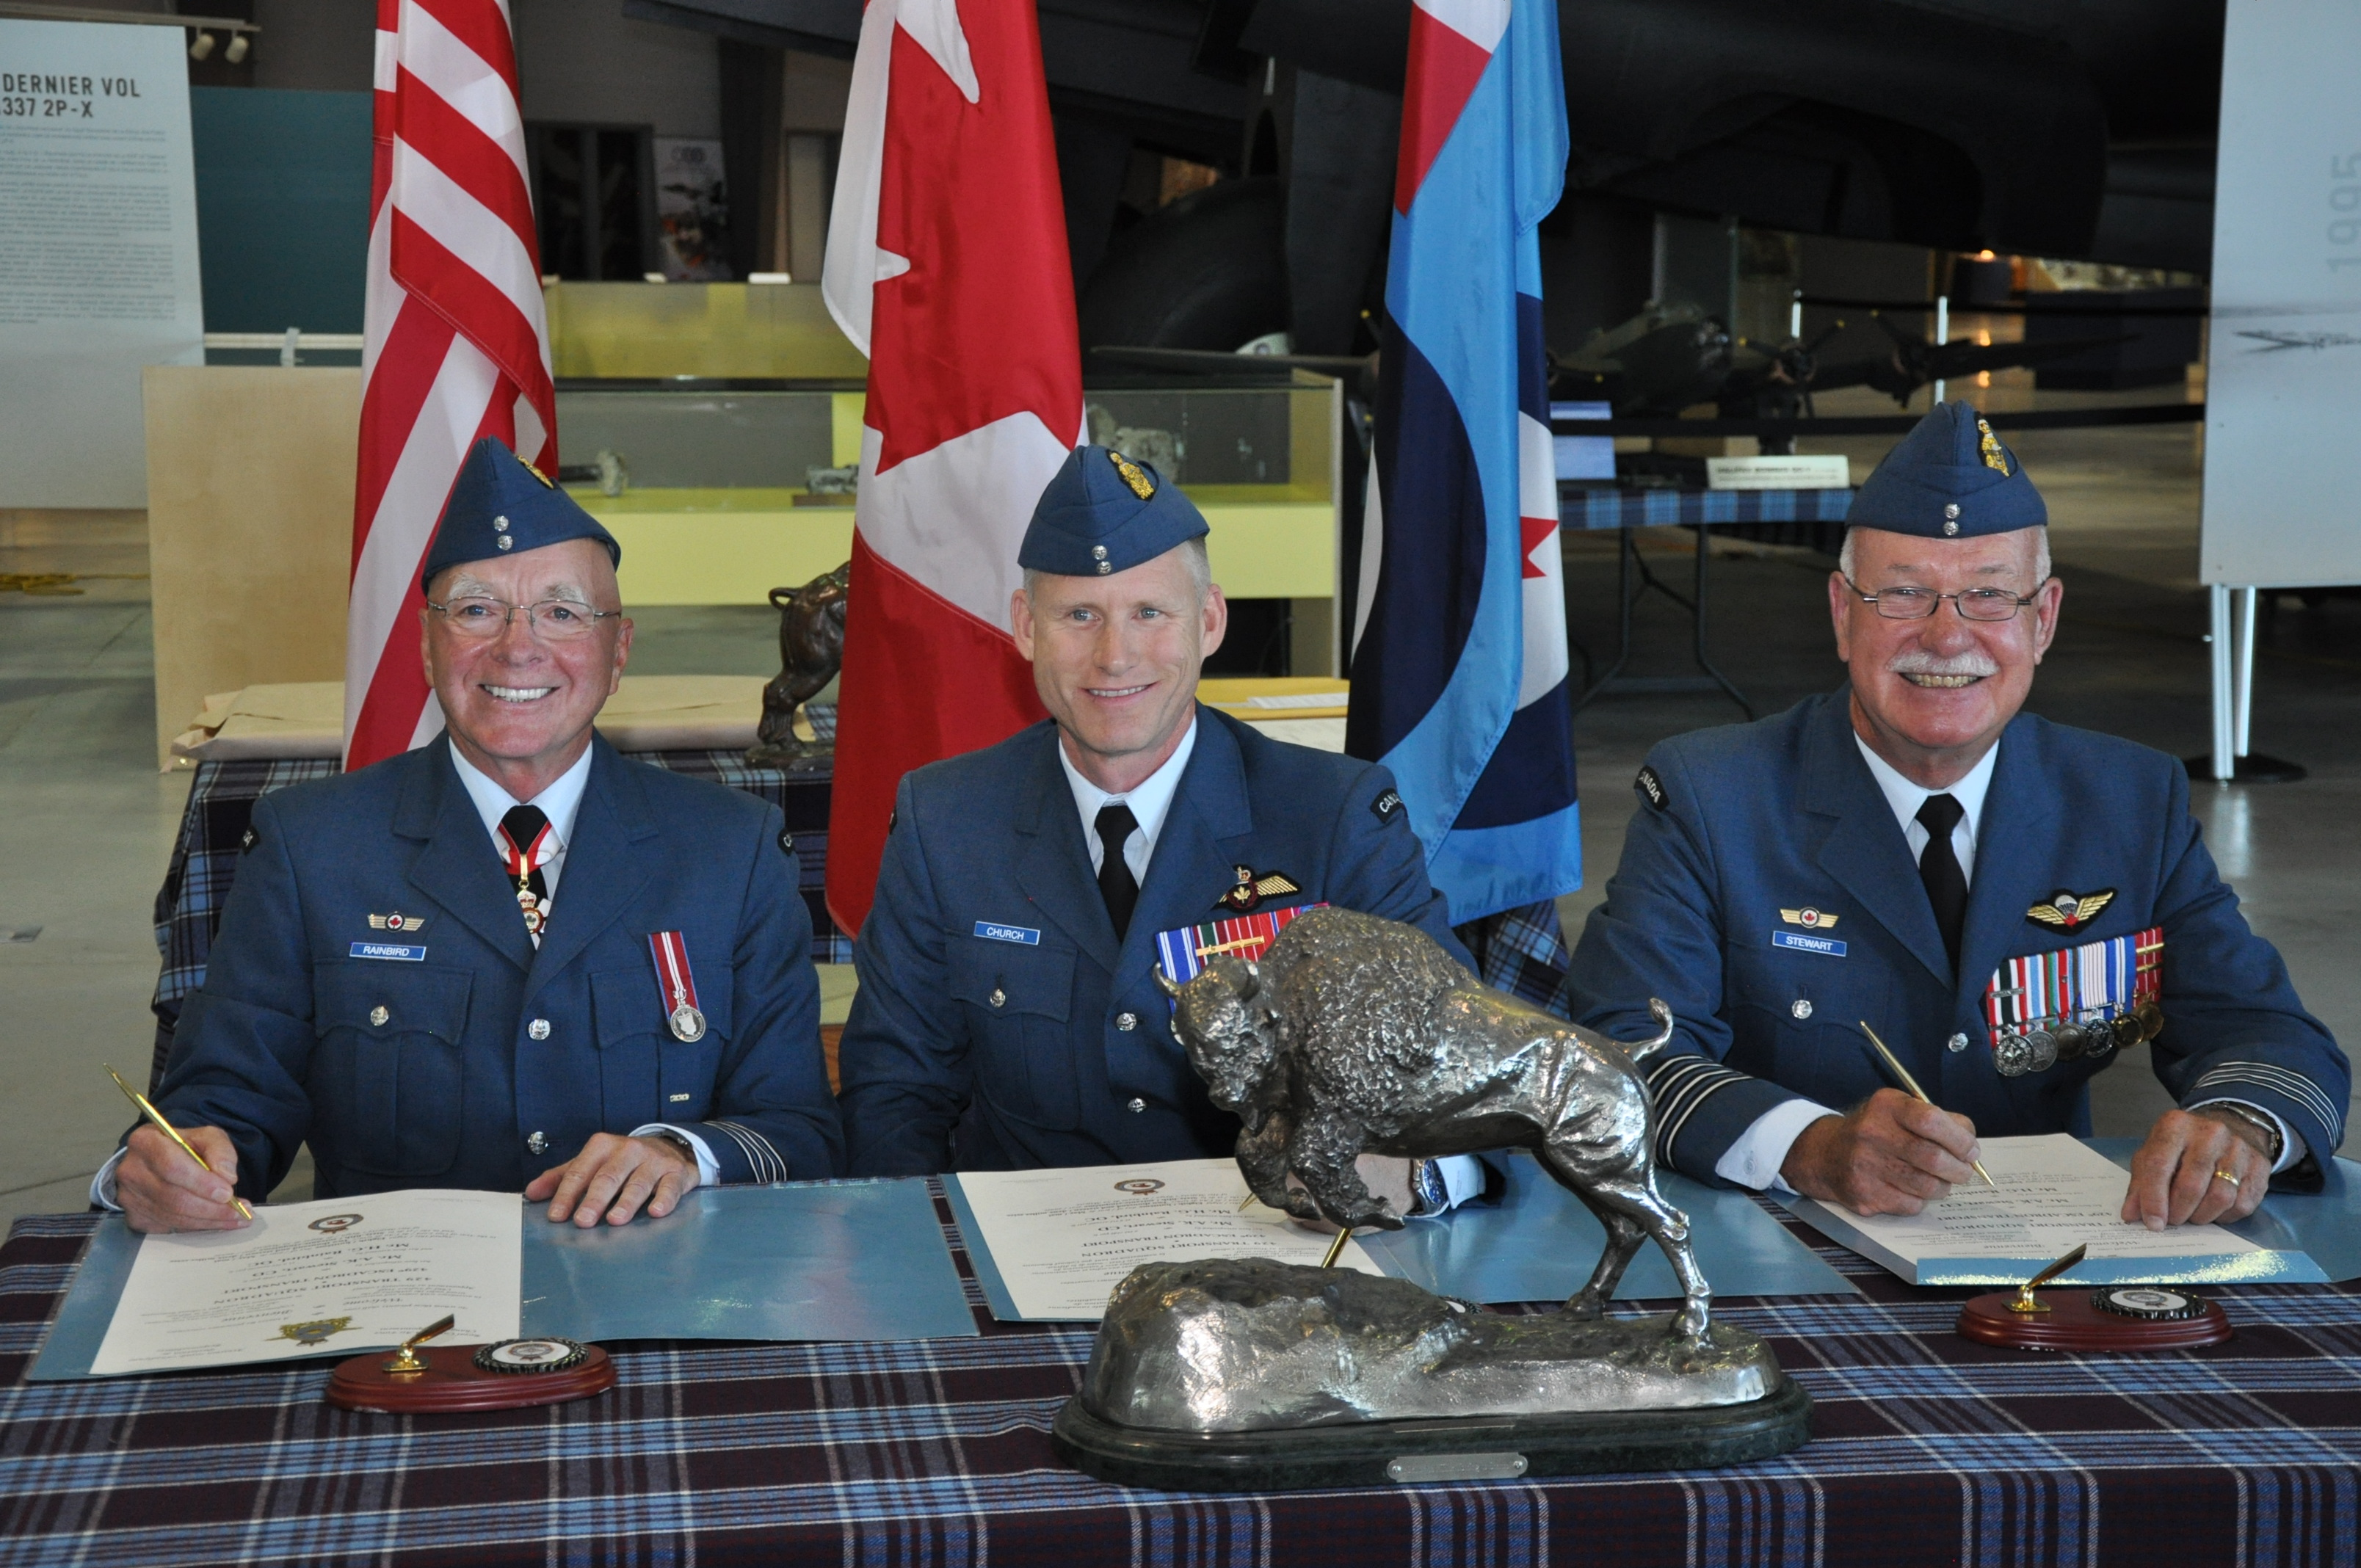 Three men in Royal Canadian Air Force dress uniforms sit behind a table covered in an RCAF tartan cloth.